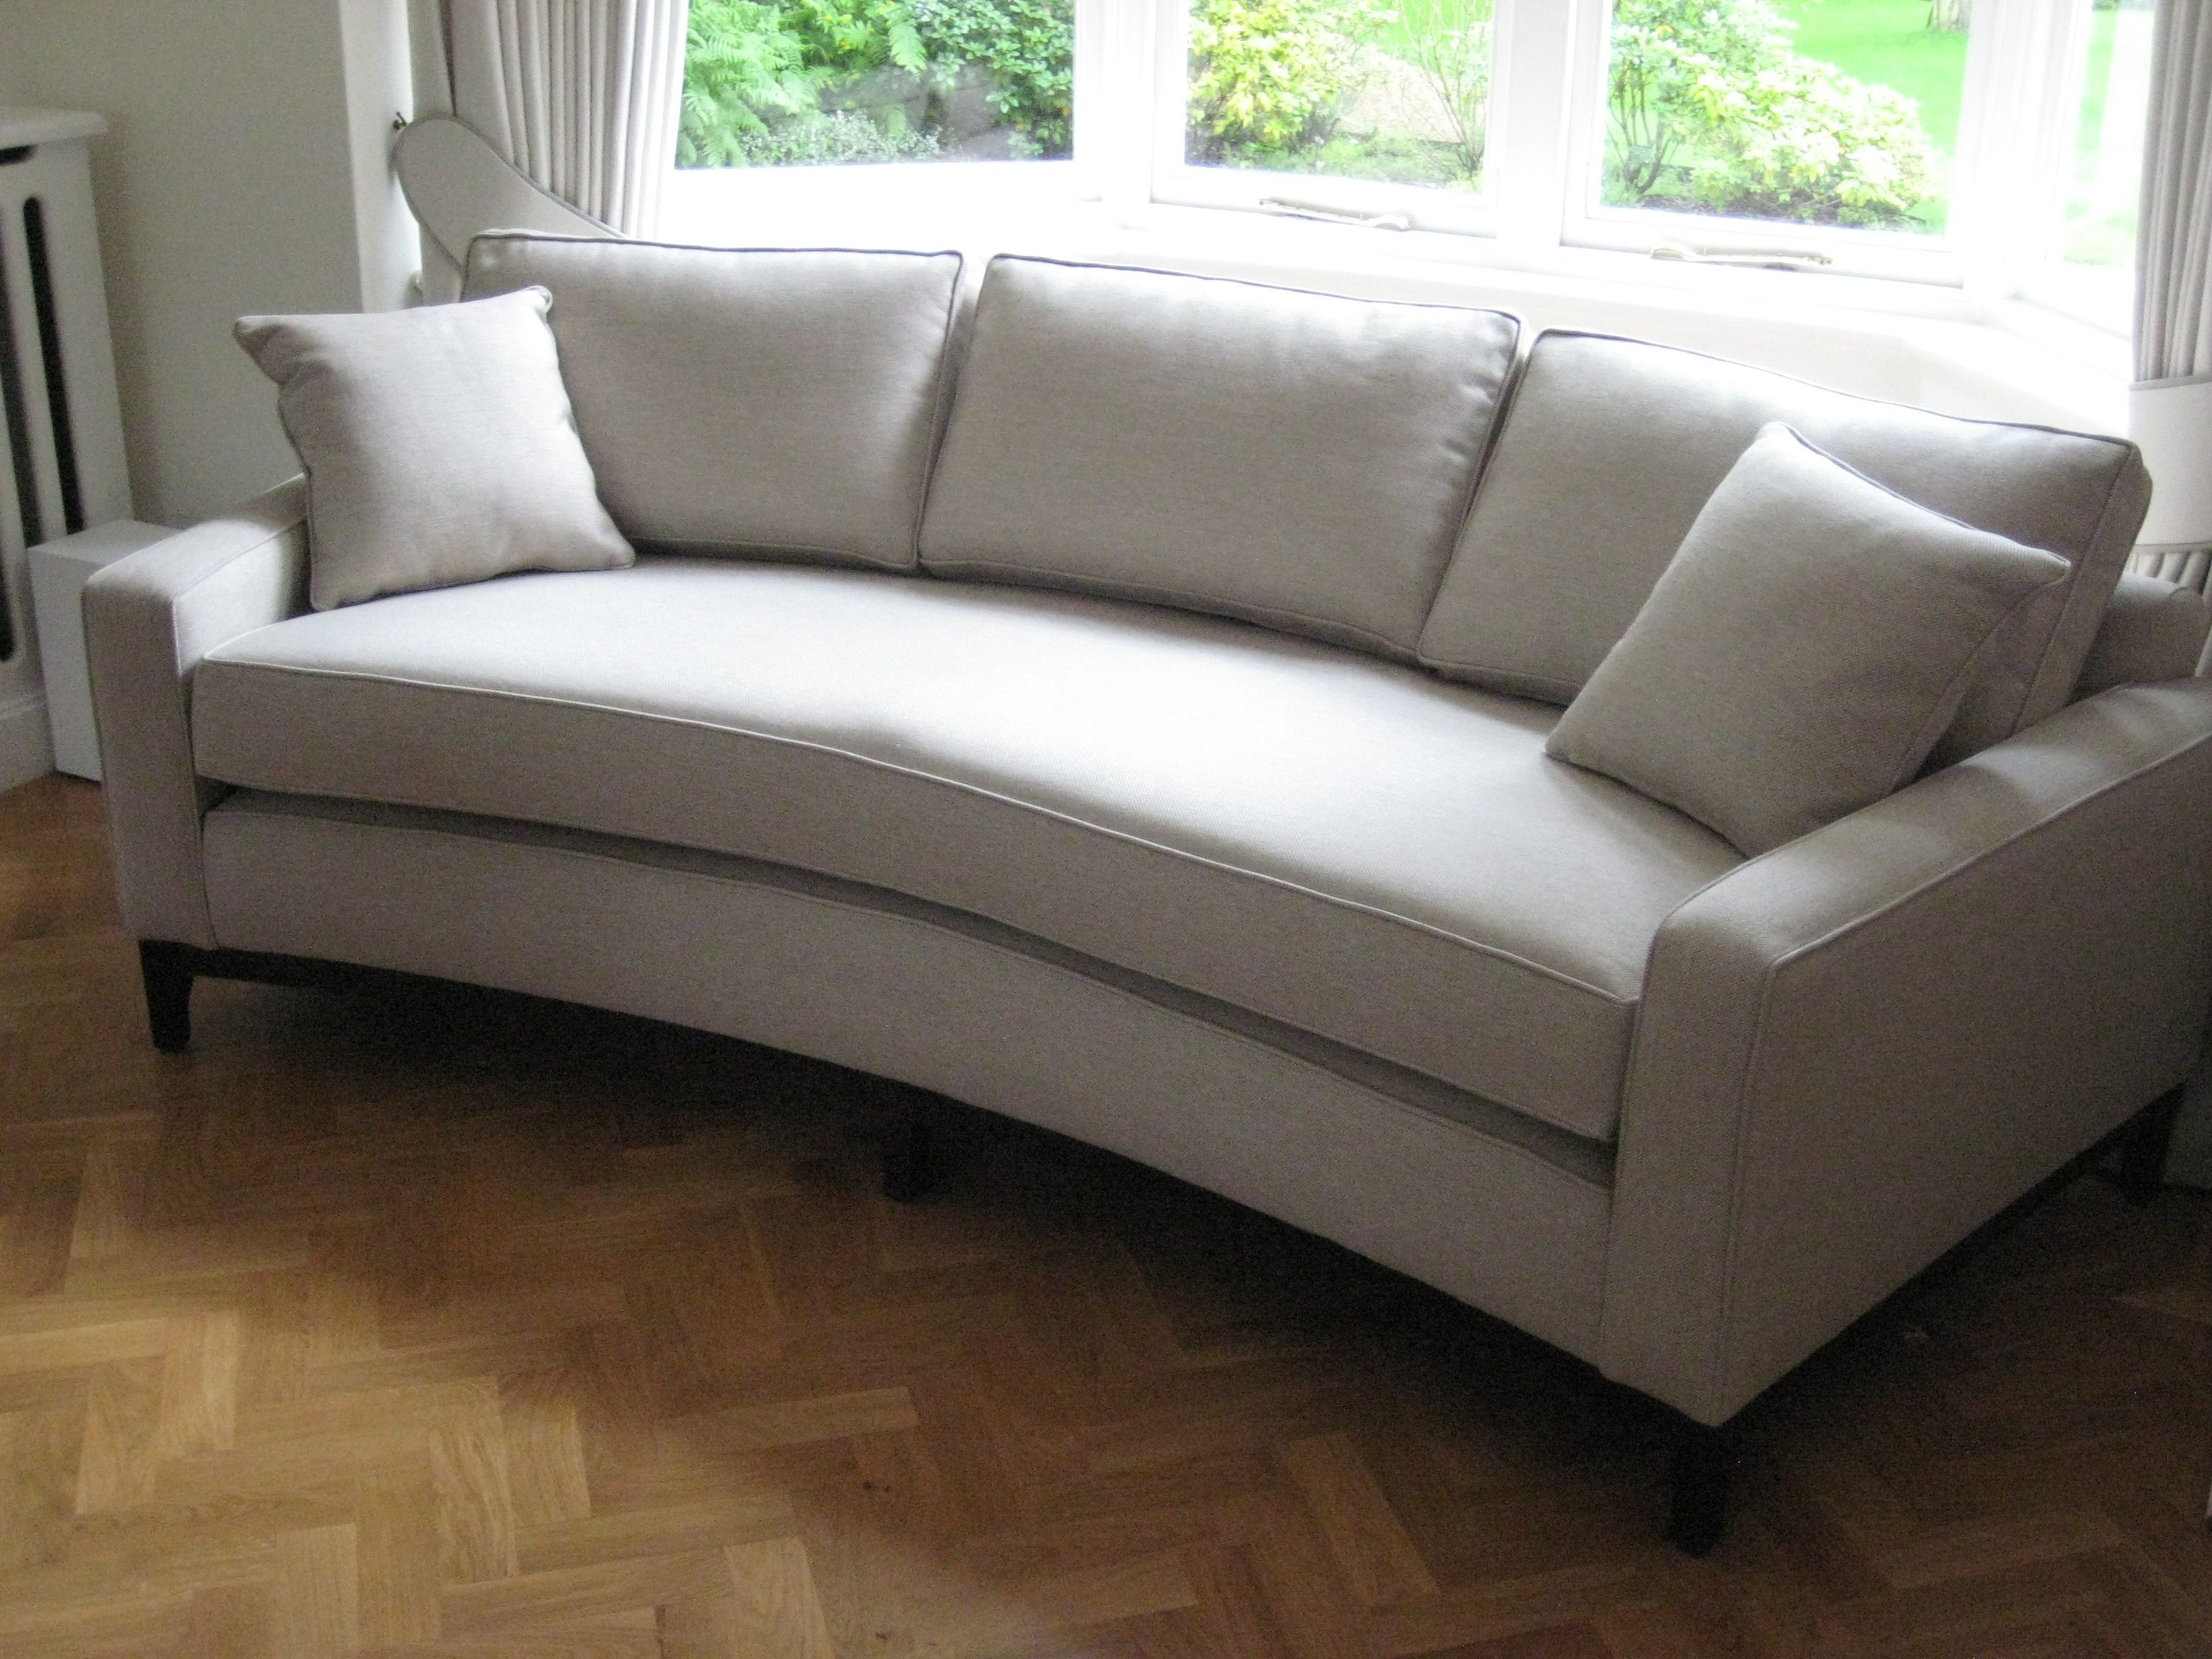 Round Sofa For Bay Window